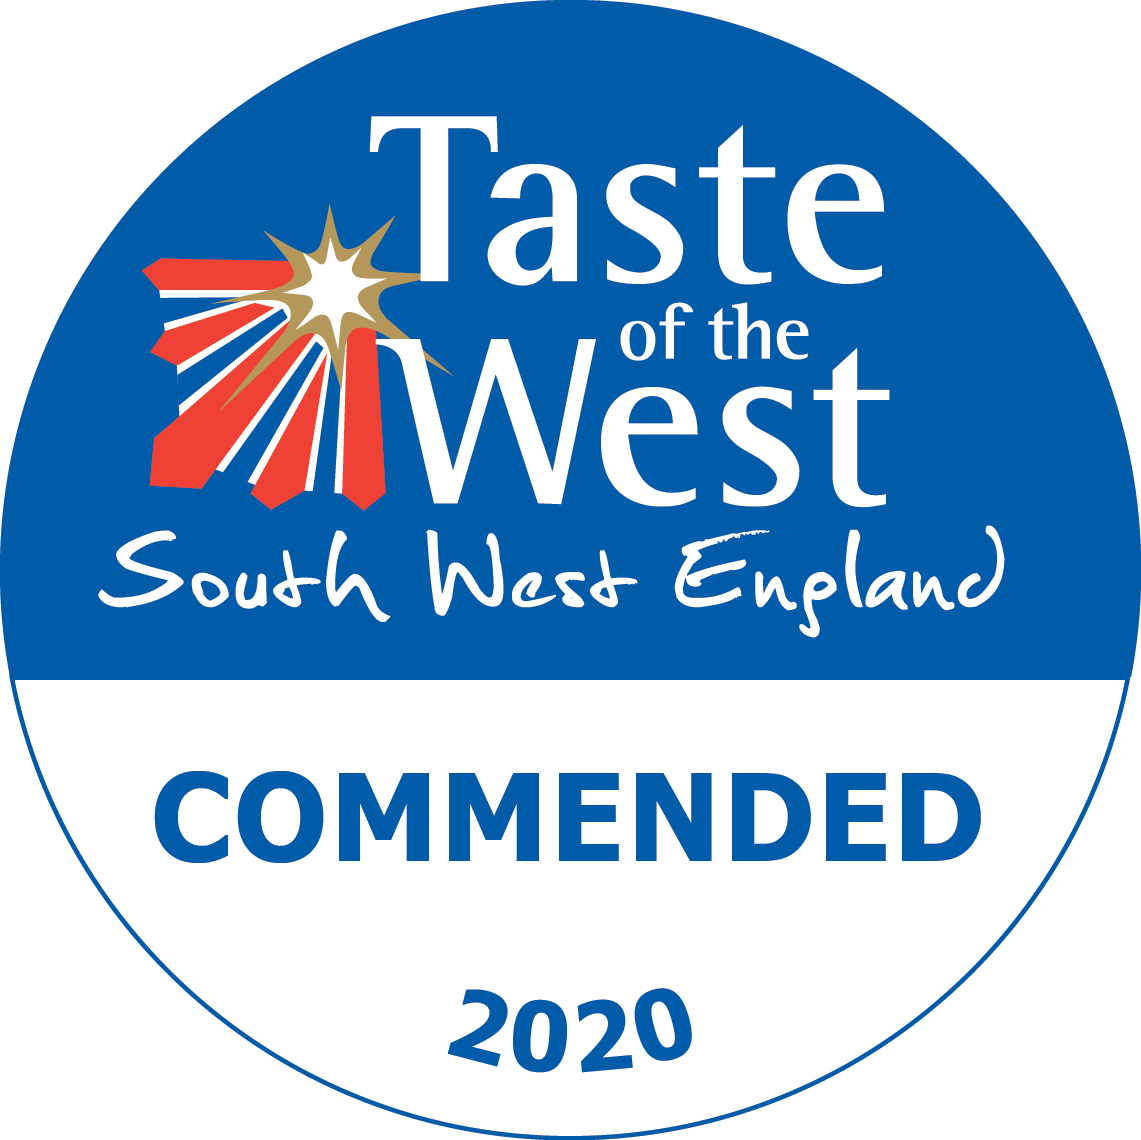 2020 Commended Taste of the West Award